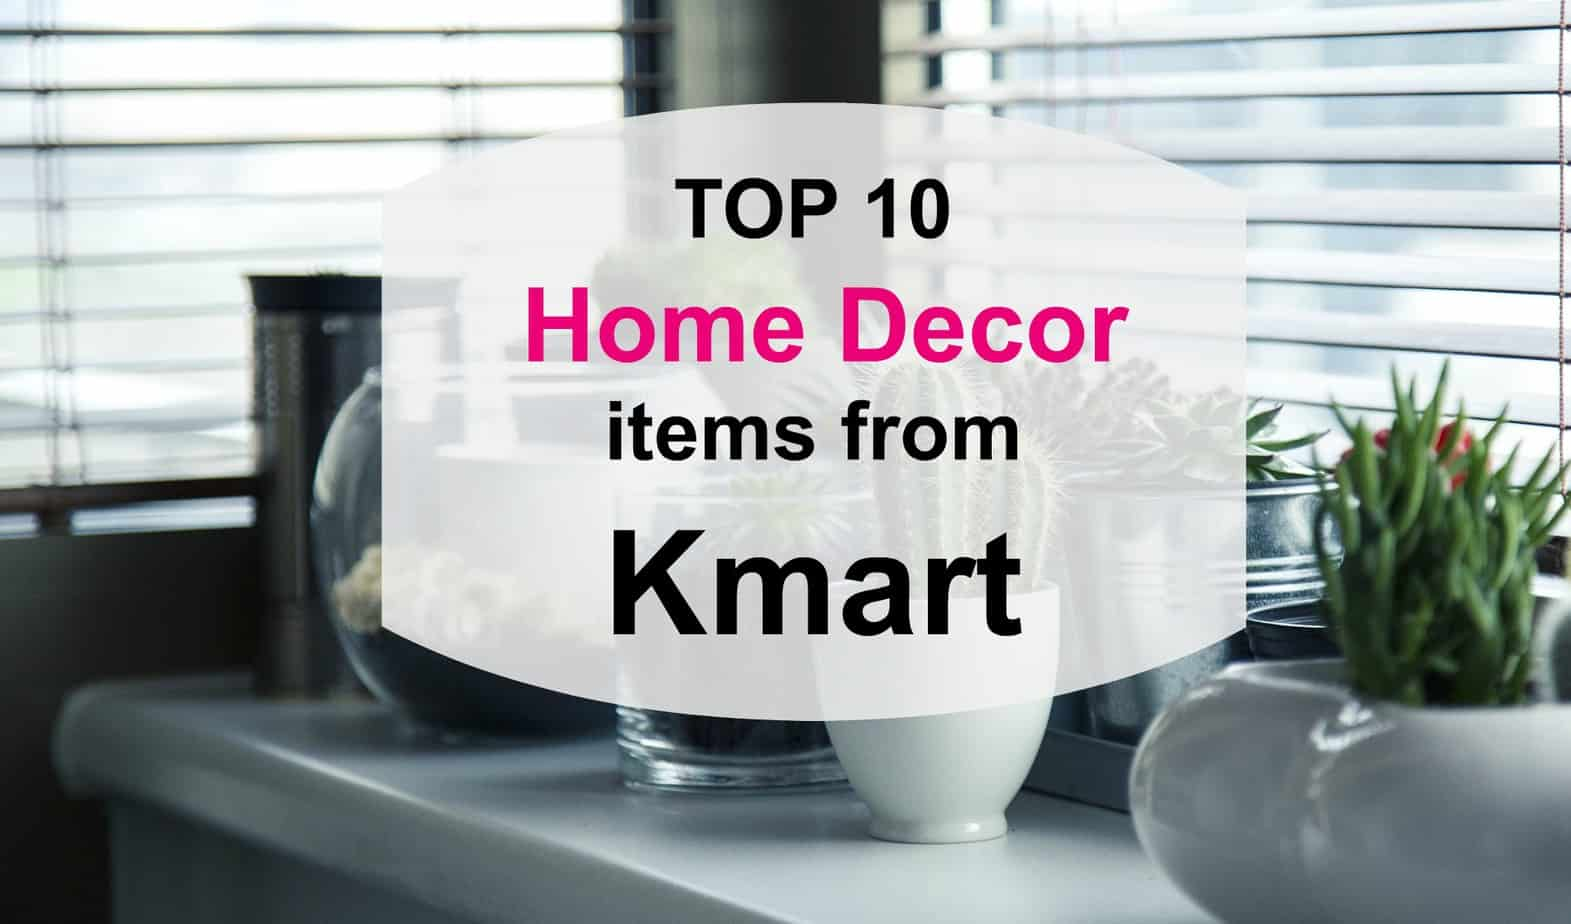 Top 10 home decor items from kmart elle cherie for Home decorations kmart